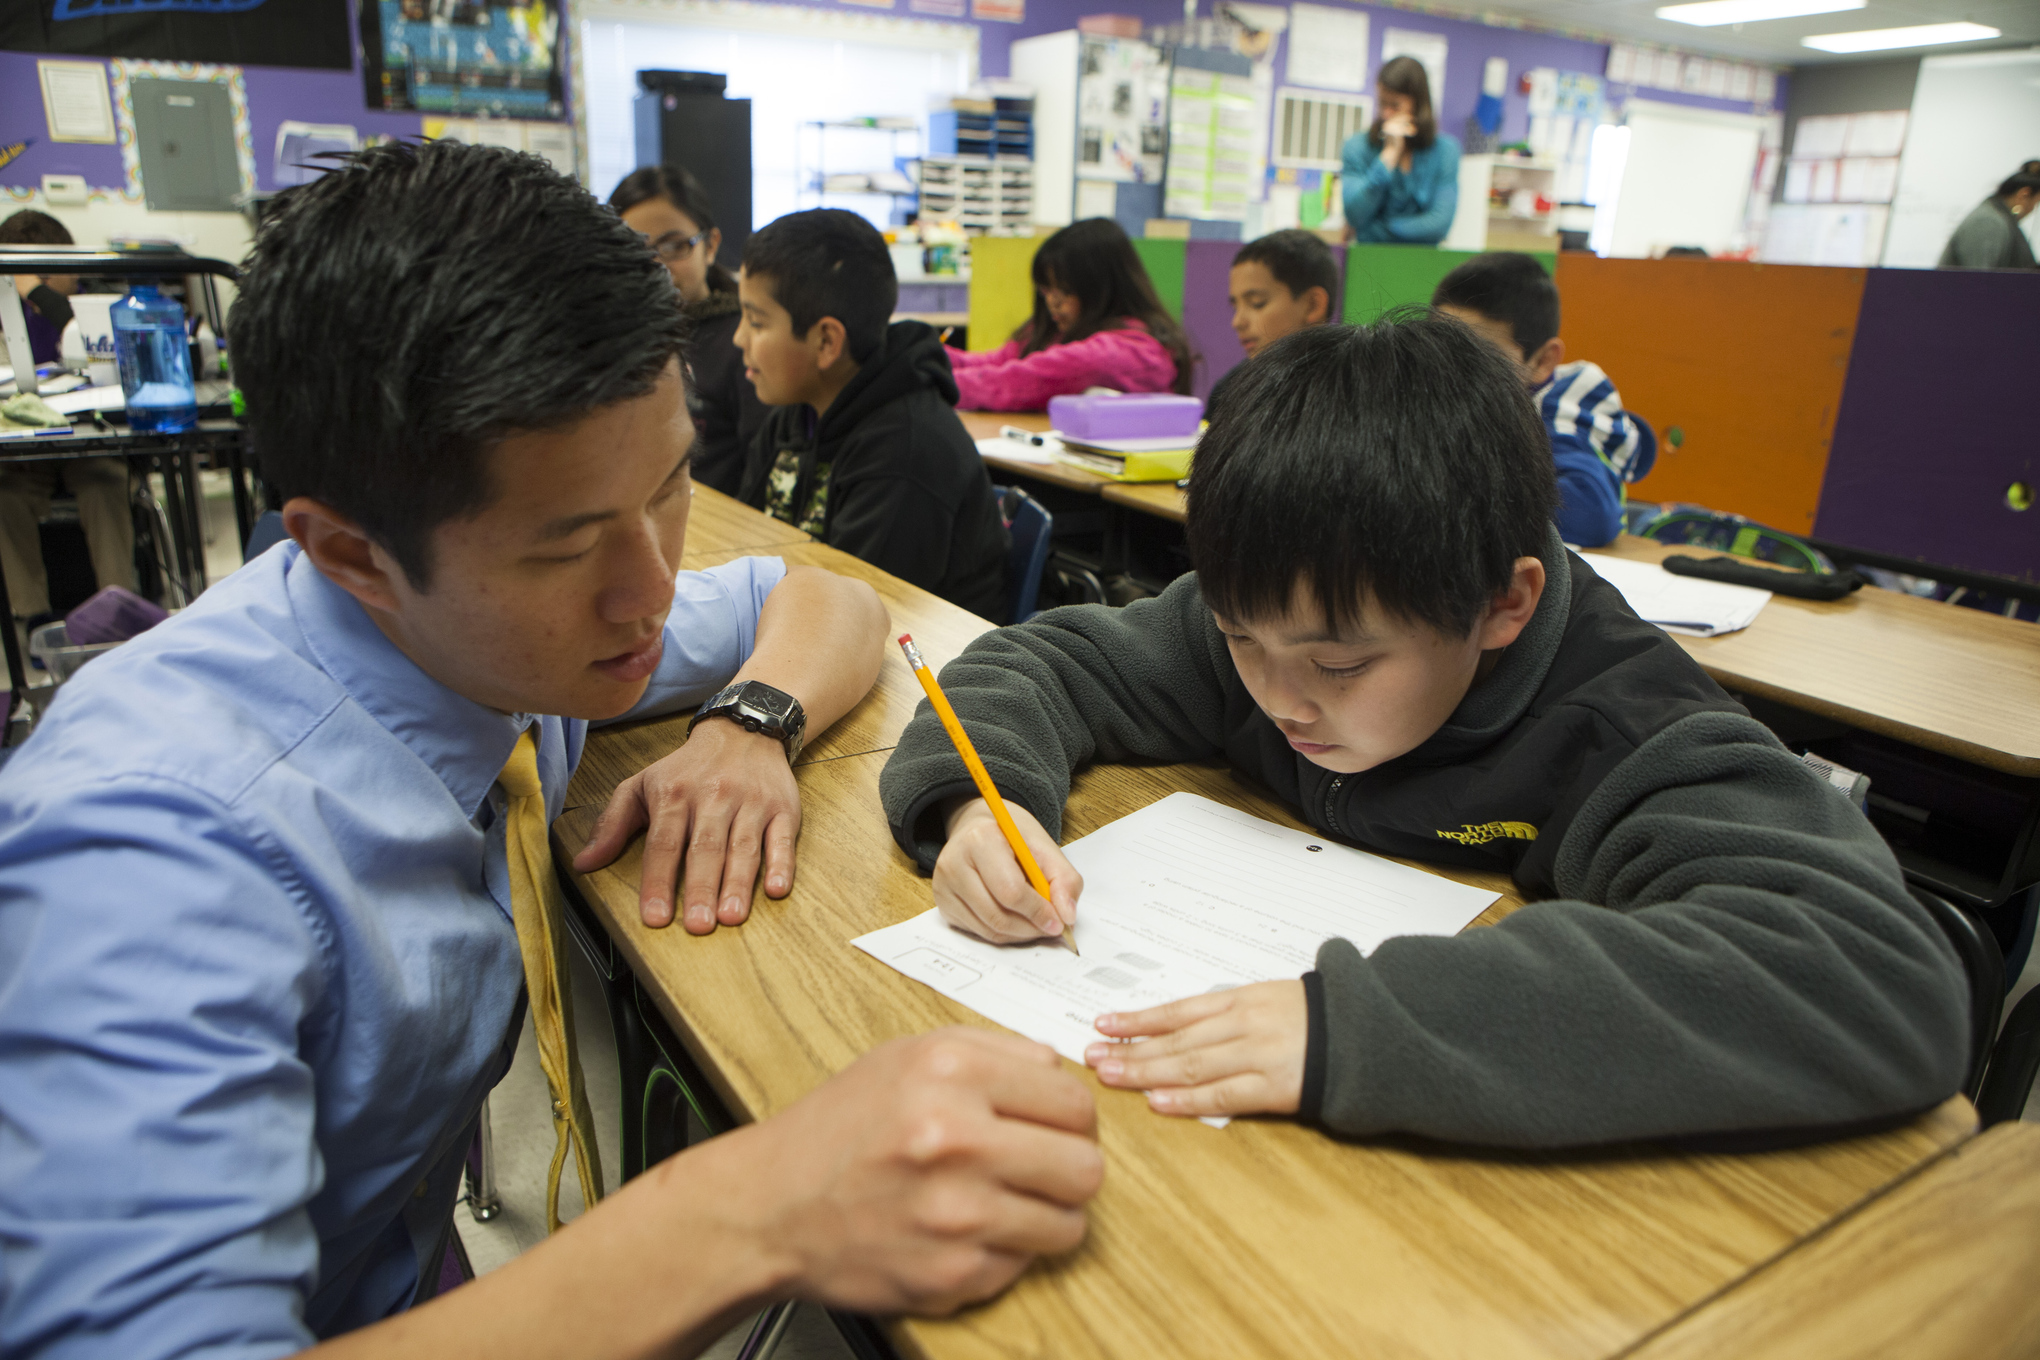 11 Facts About Us Teachers And Schools That Put The